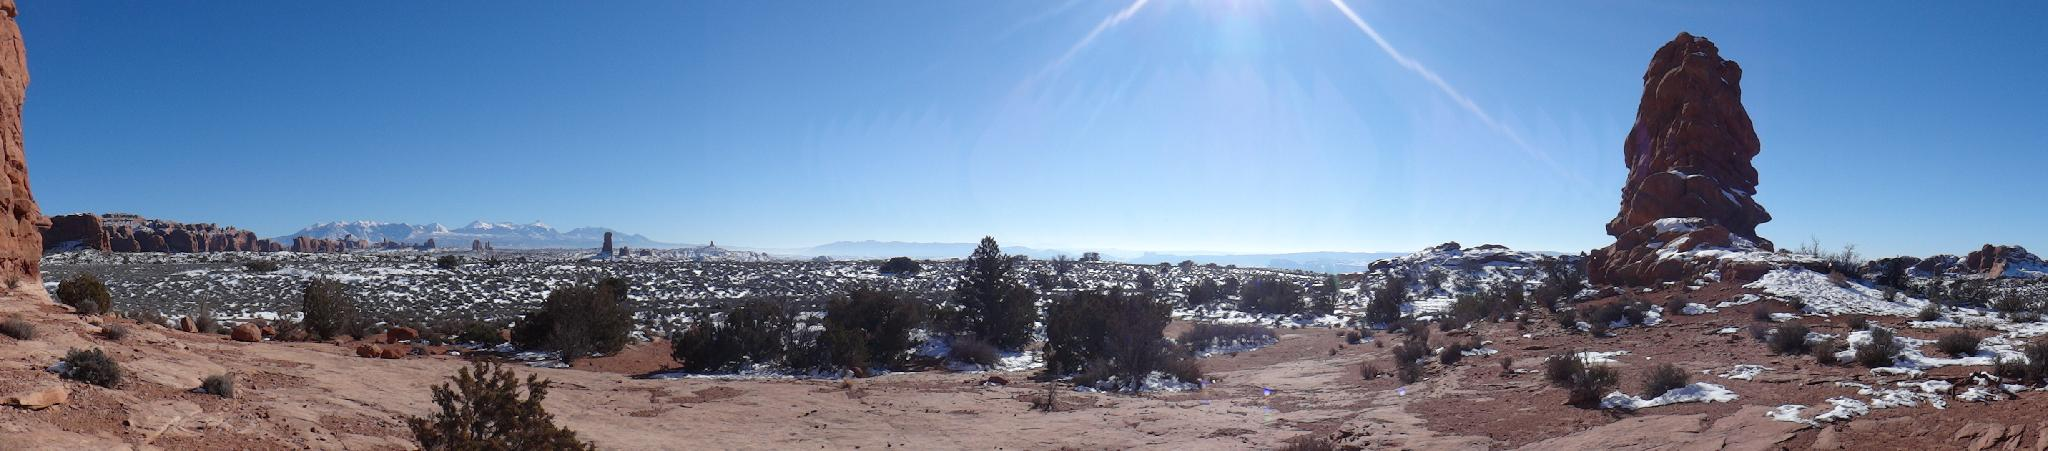 Winter panorama from behind Balanced Rock. The La Sal Mountains and Windows in the background.